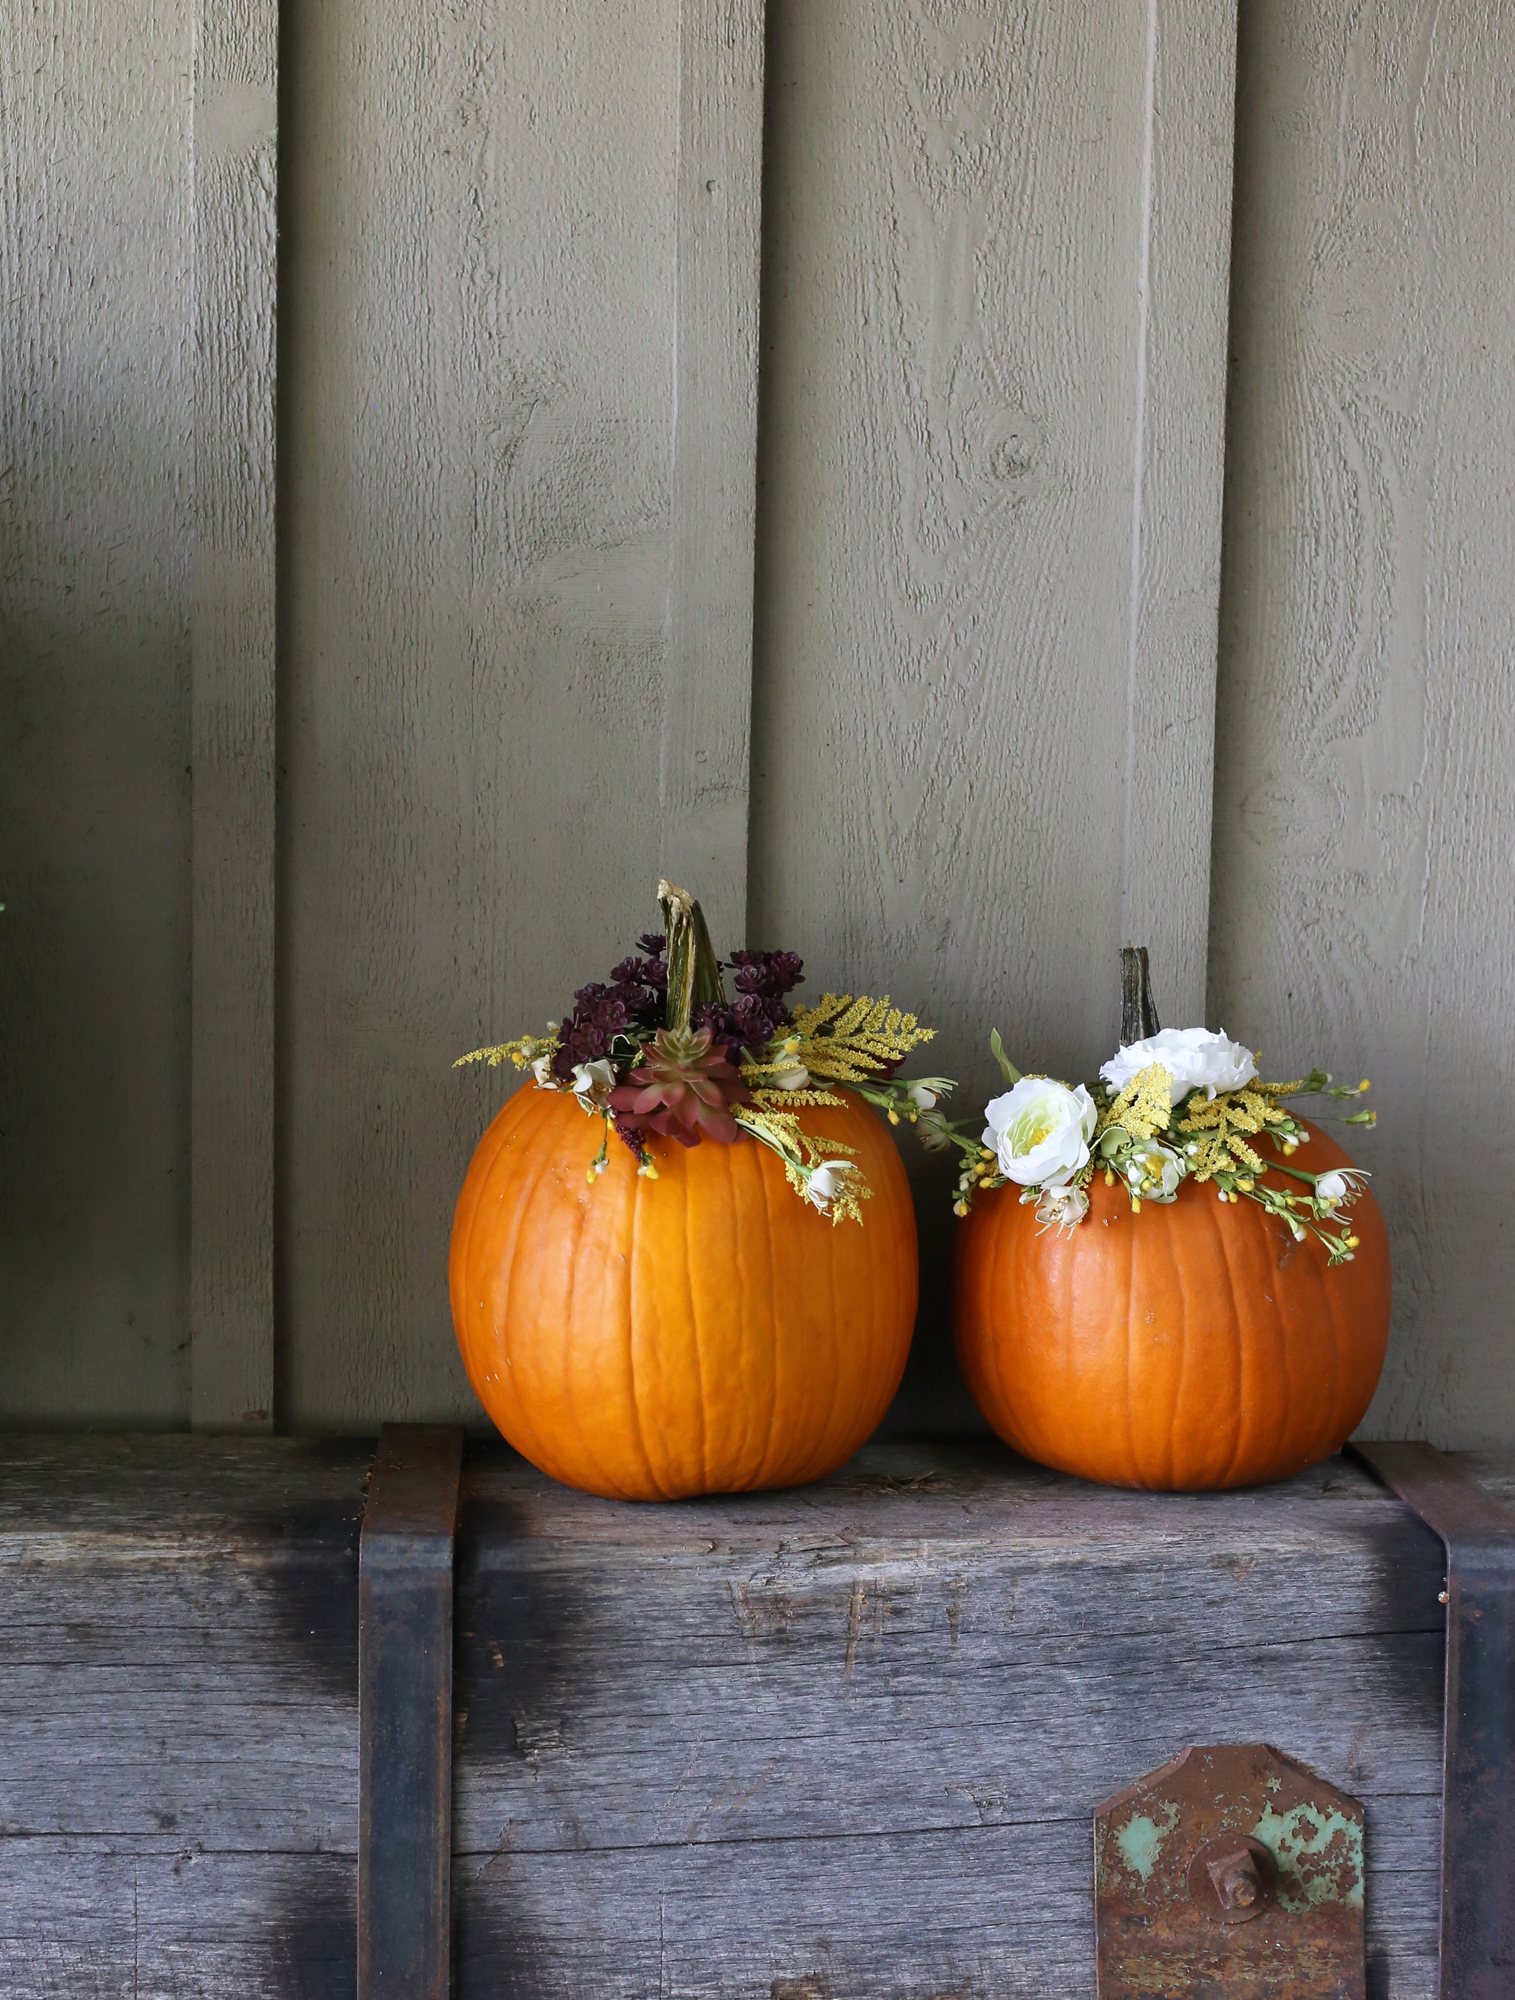 Decorate your pumpkins in a new way this year! DIY Floral Pumpkins via Lily & Val Living!